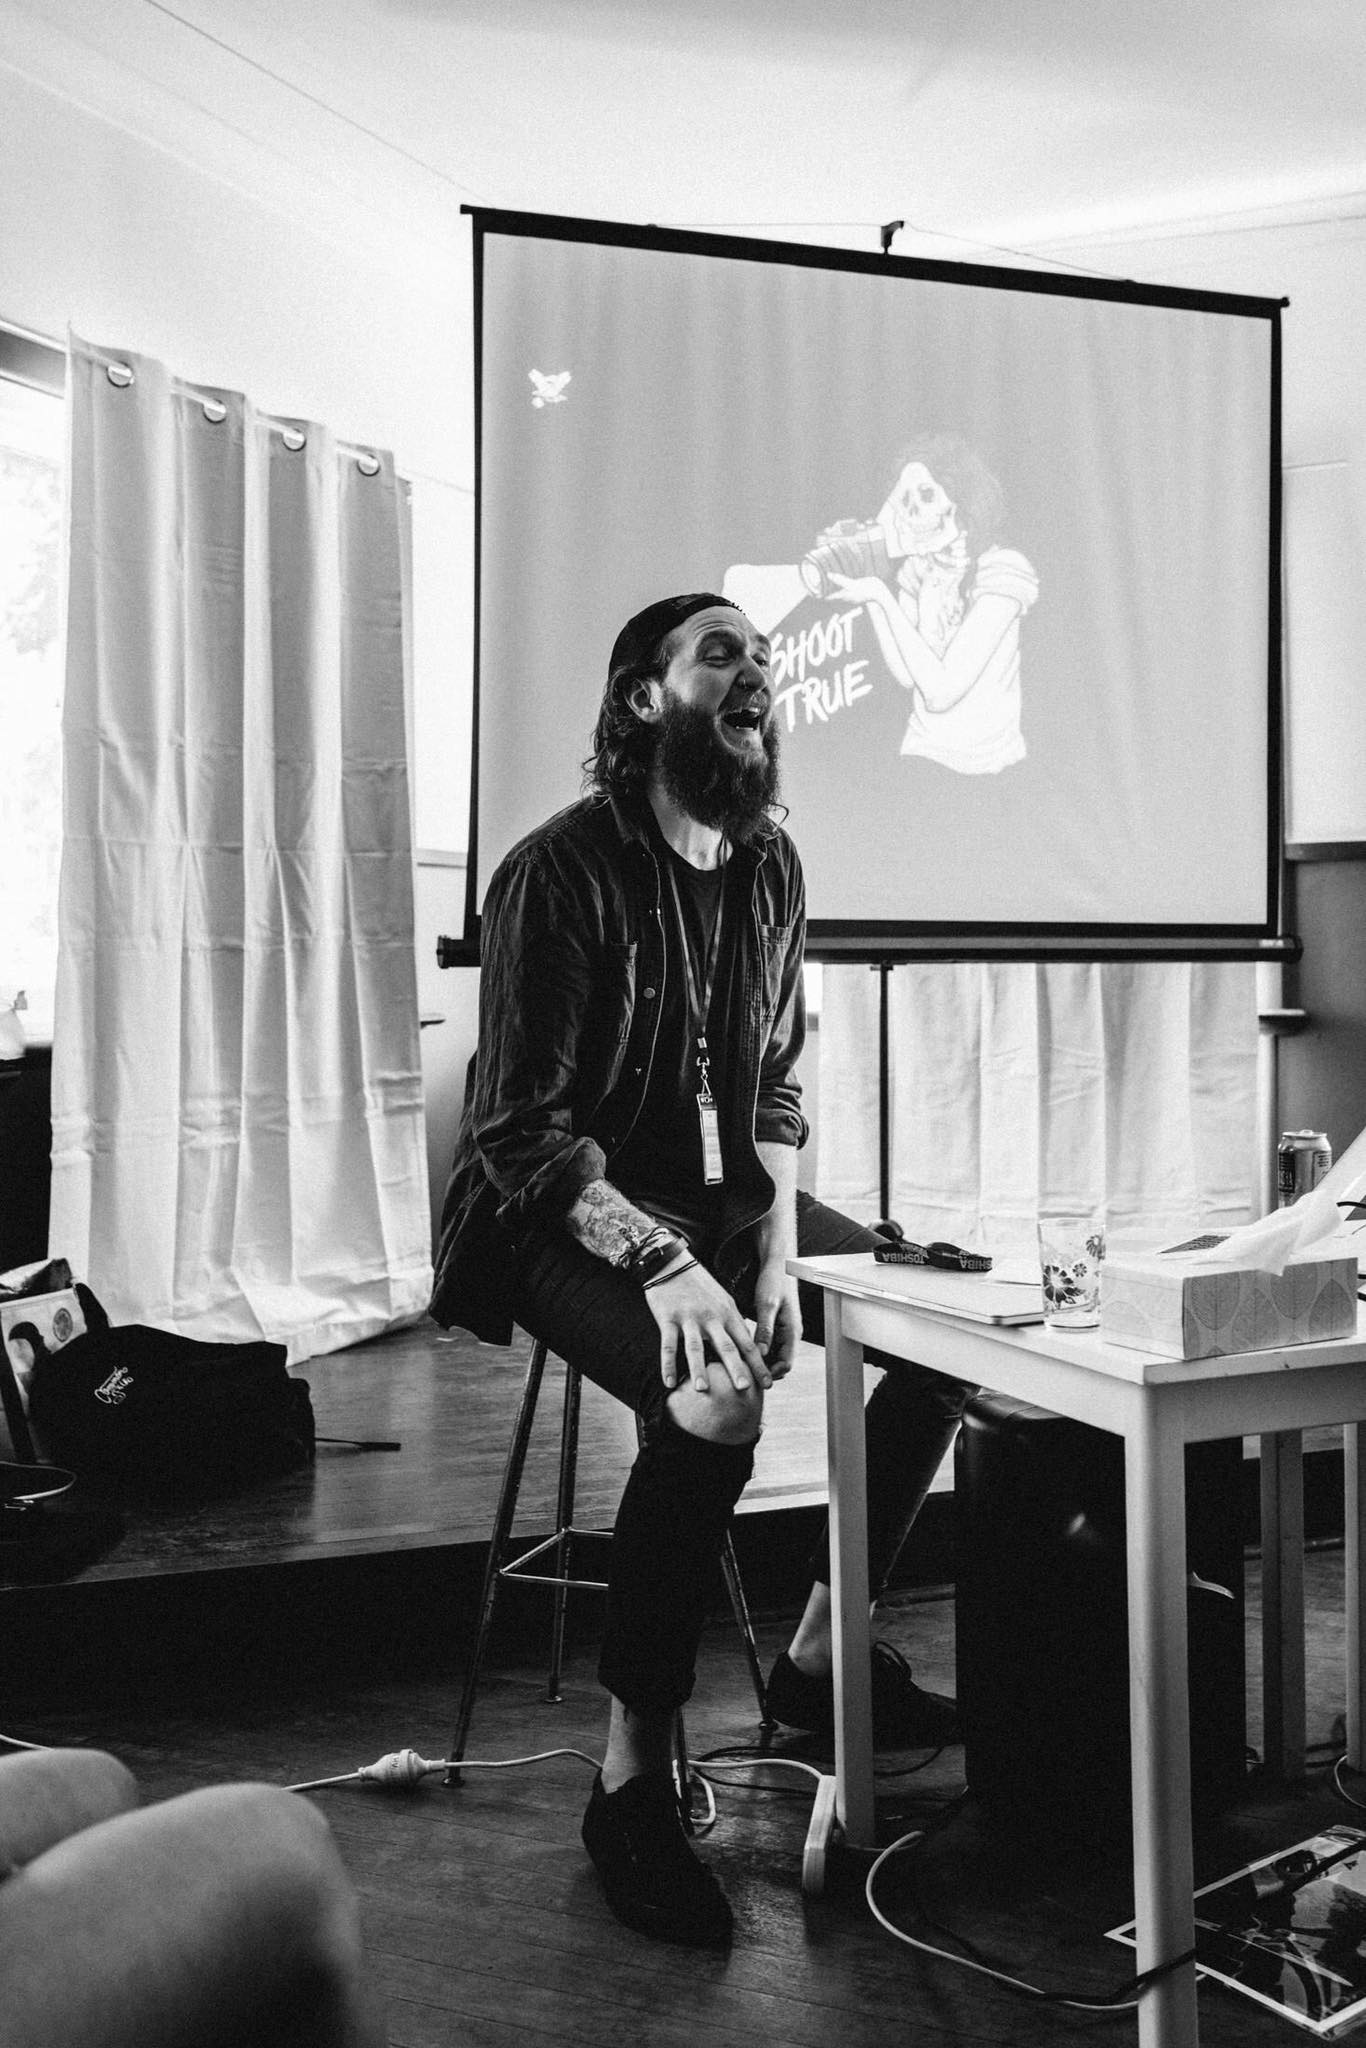 Benjamin Urquhart, photographer and head of Kings & Thieves, speaking at wedding photography workshop Camp Common Folk in WA.    Photo By Tahnee Jade   .